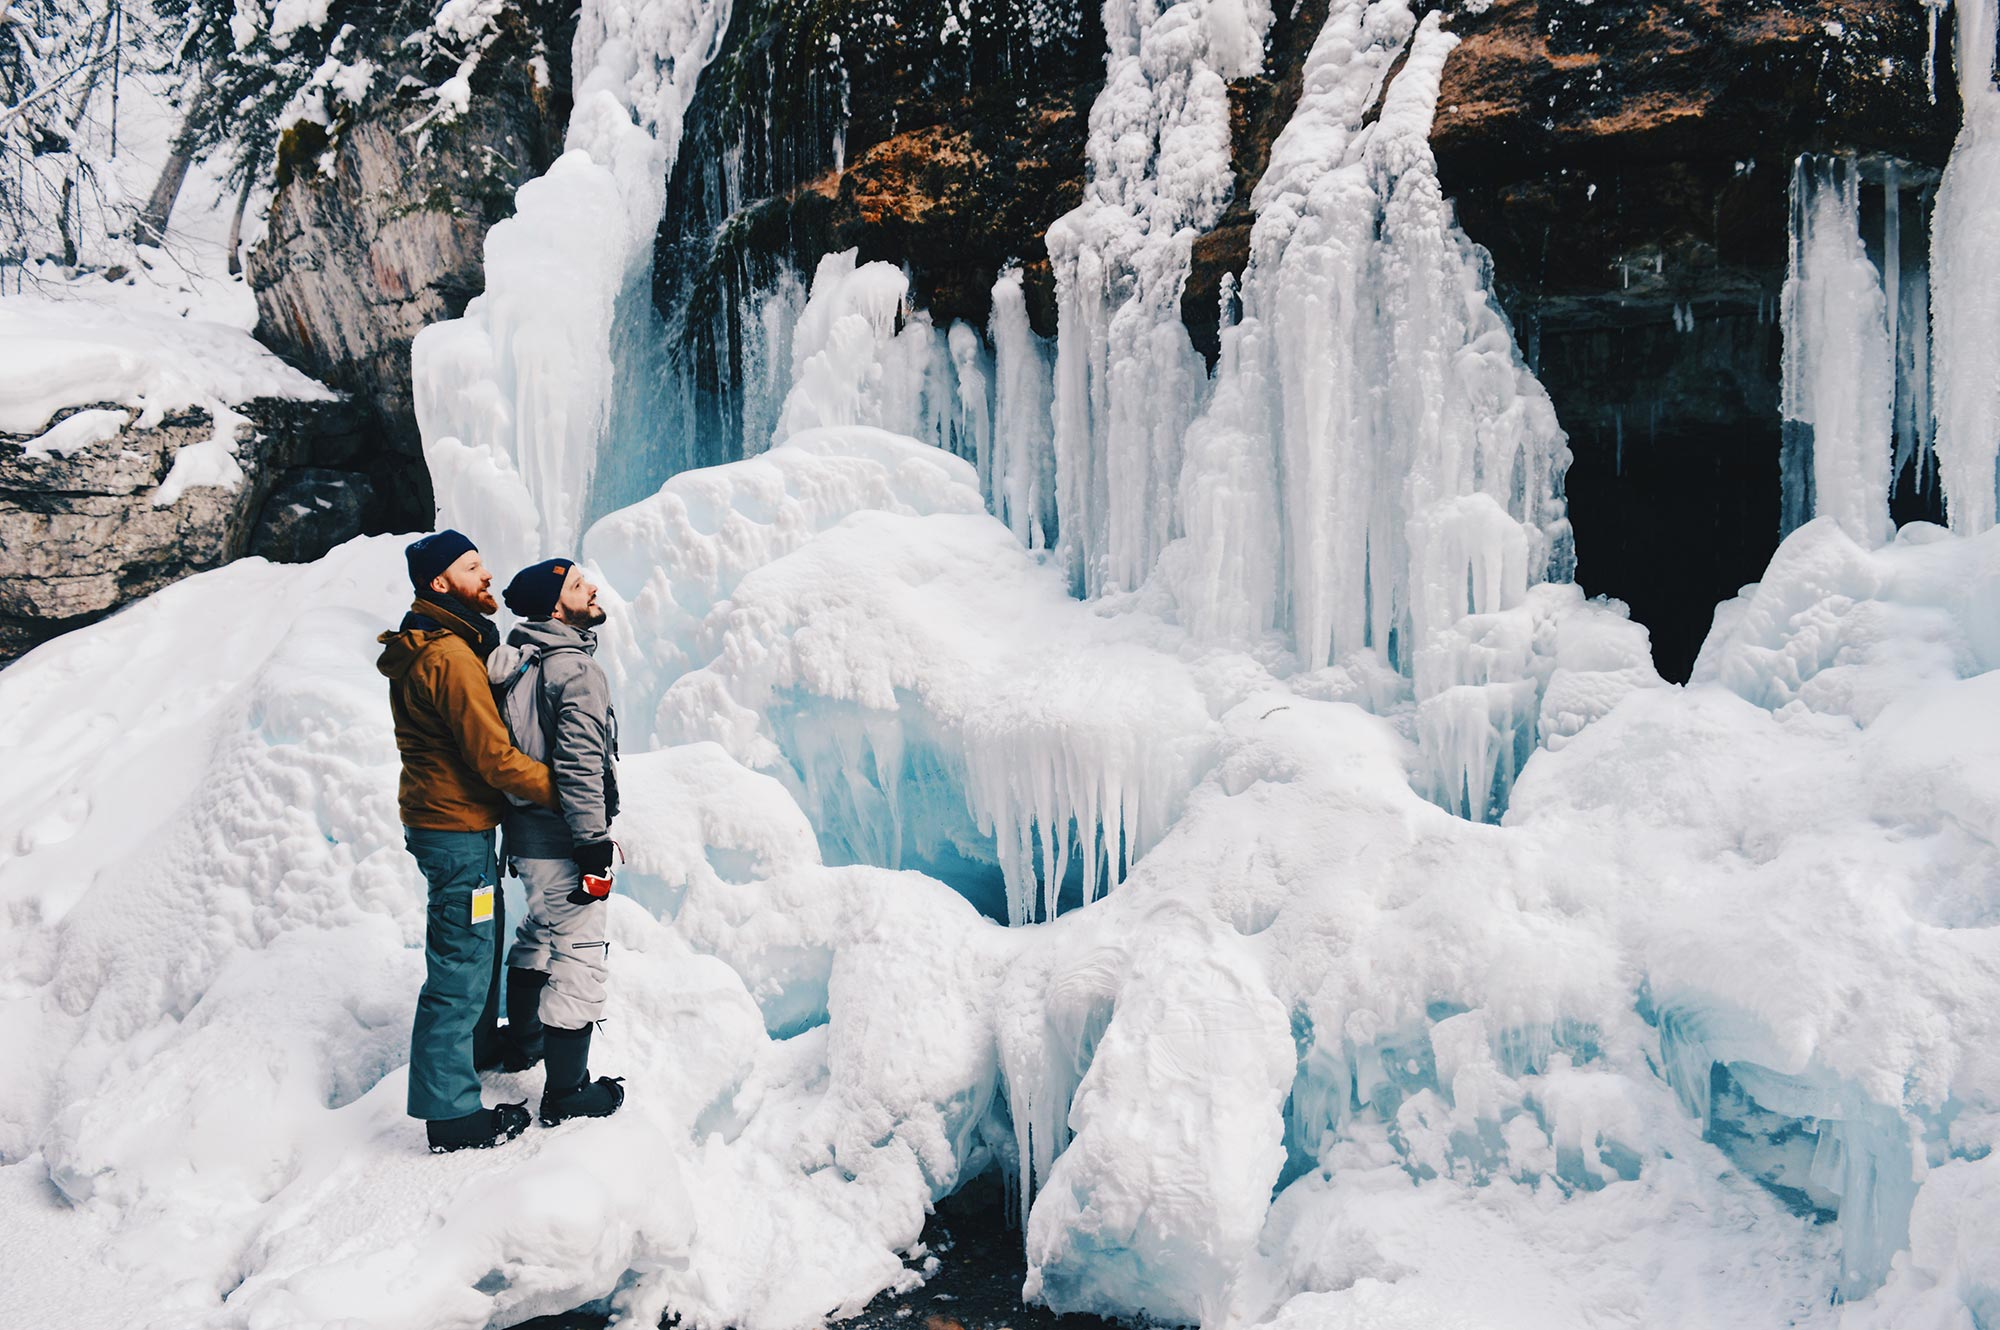 Gay Winterreise Kanada Jasper Ice Pride Maligne Canyon Ice Walk Tour © CoupleofMen.com